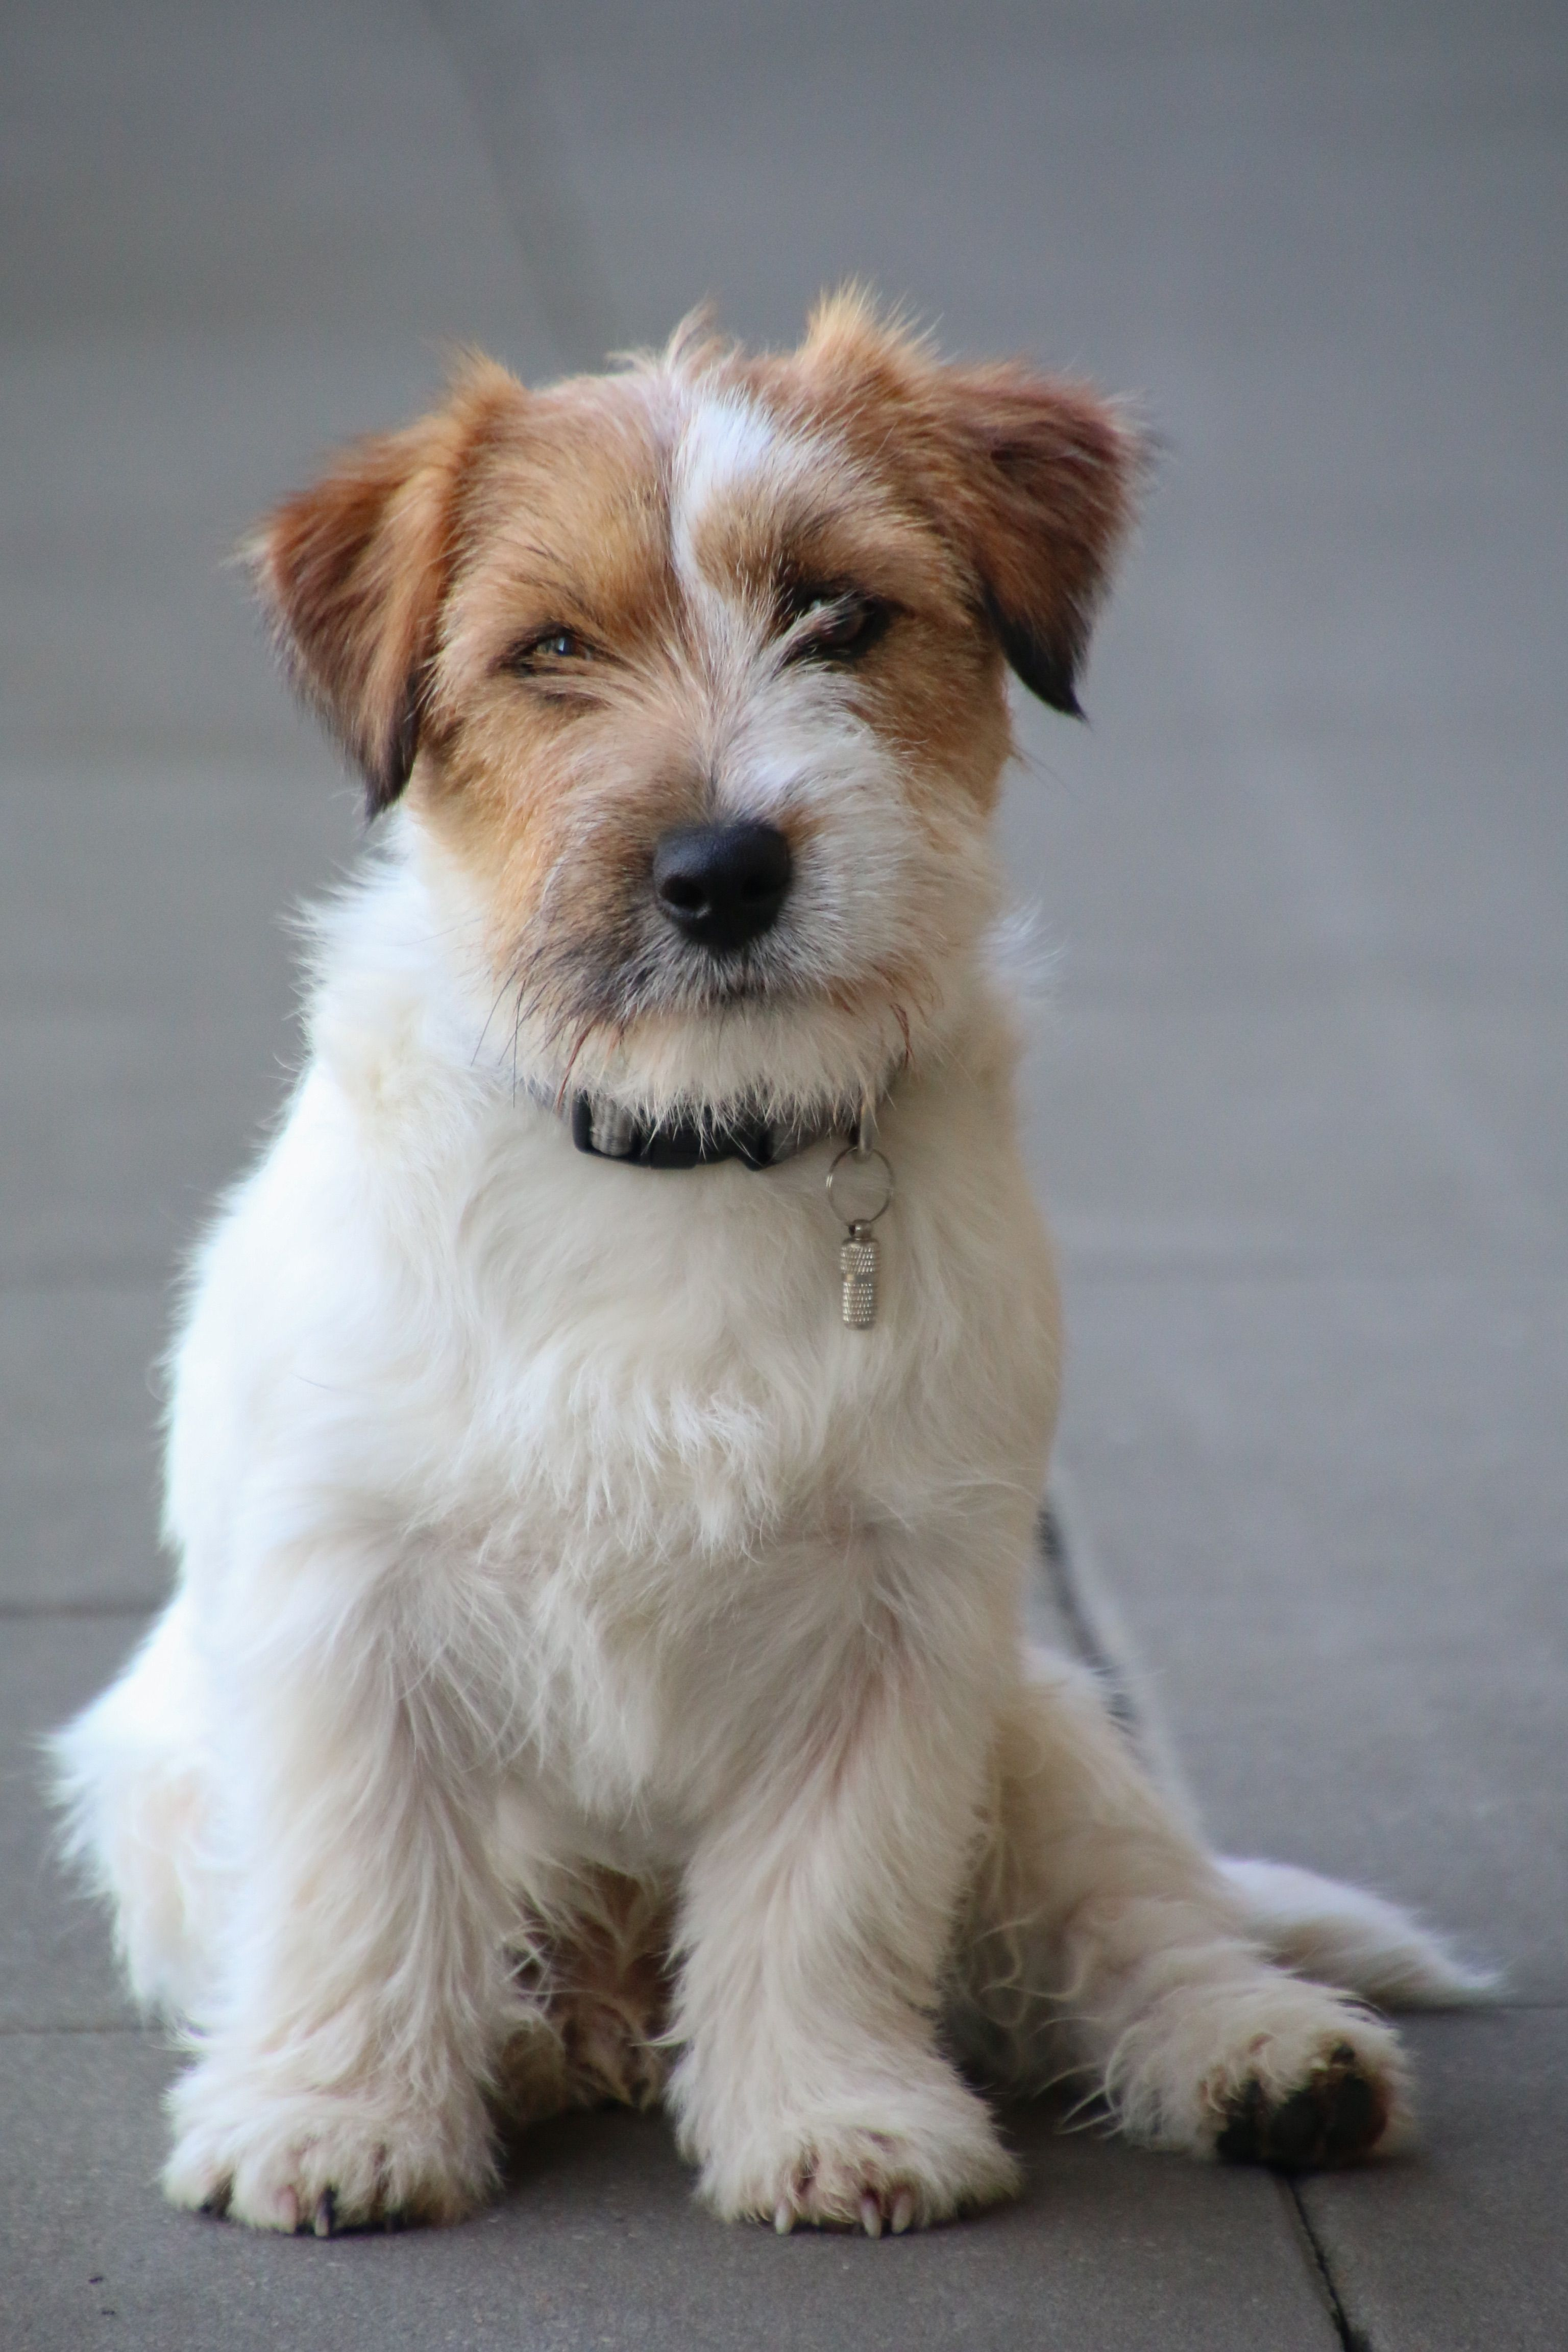 Pin By Holly Hepp On Jack Rusell Jack Russell Terrier Jack Russell Jack Russell Terrier Puppies